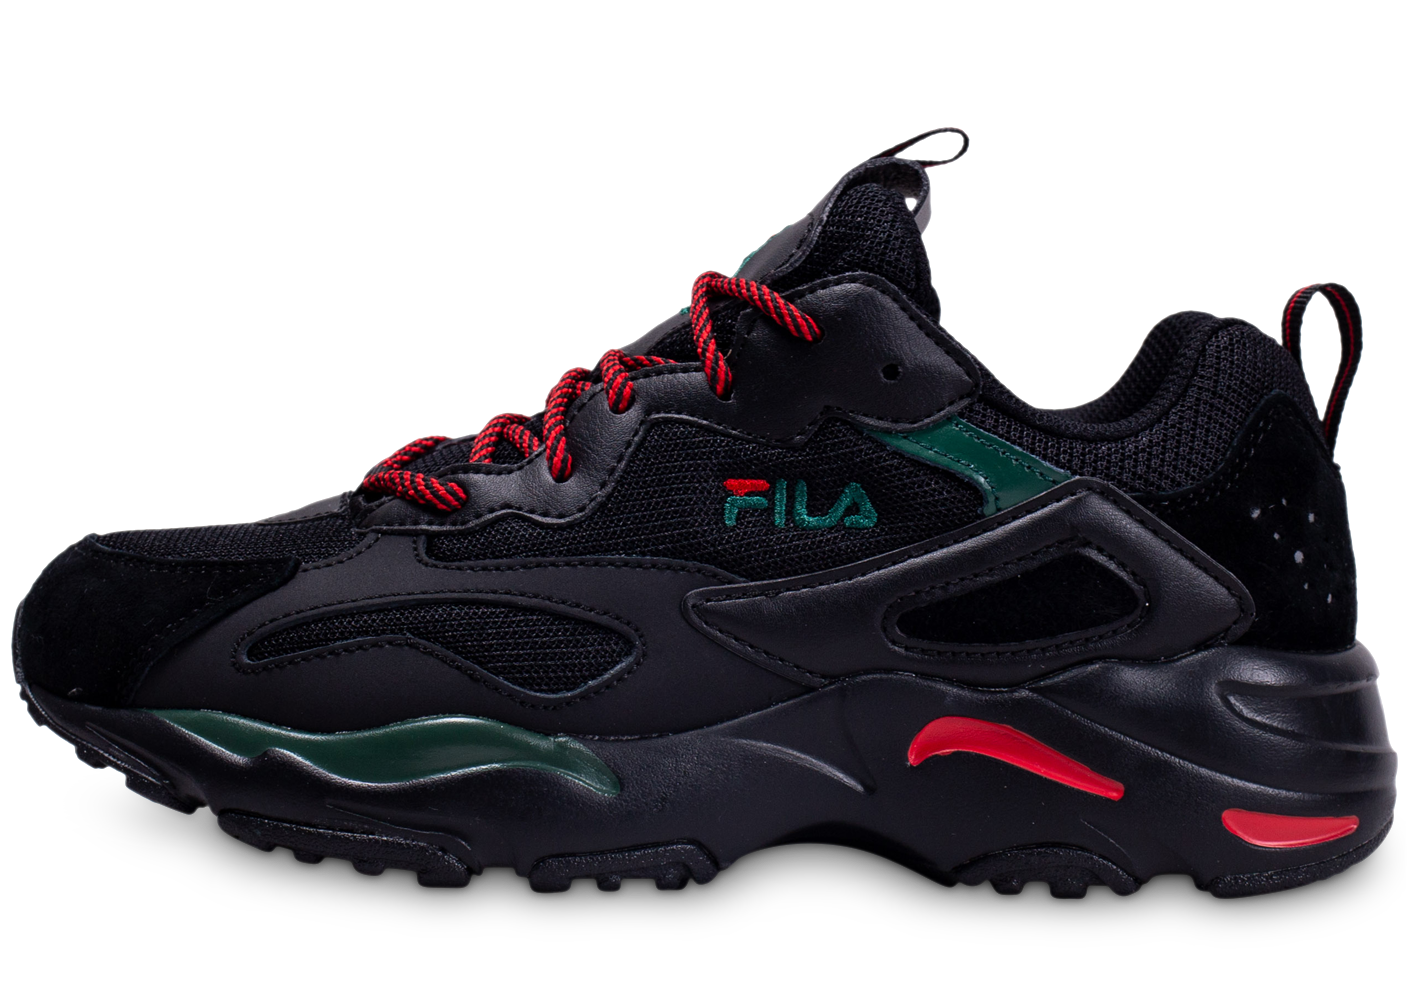 Fila homme ray tracer noire rouge vert baskets